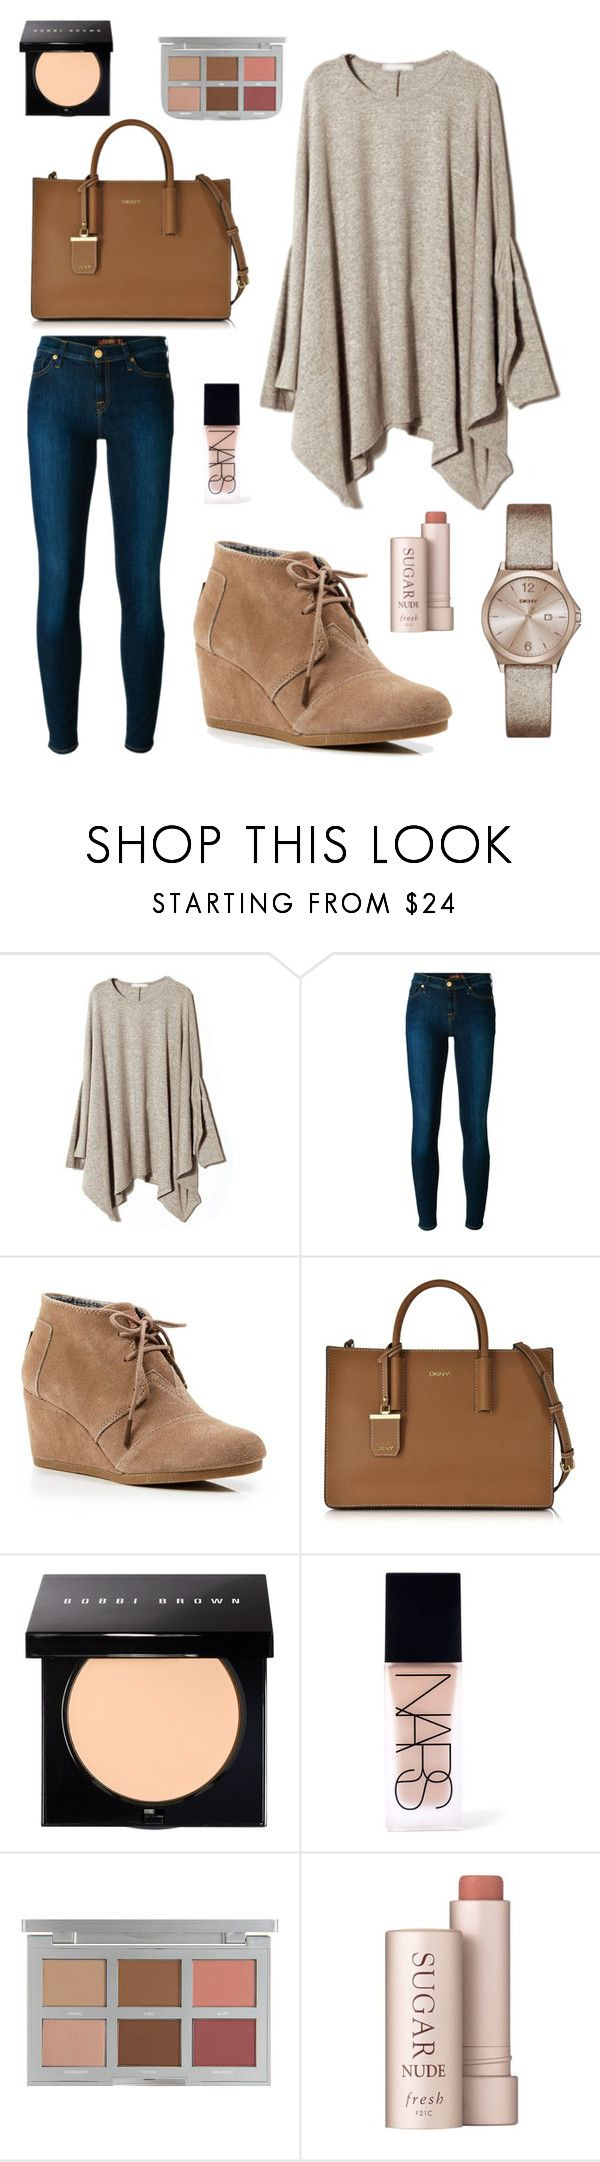 """""""902"""" by chloemaespann ❤ liked on Polyvore featuring 7 For All Mankind, TOMS, DKNY, Bobbi Brown Cosmetics, NARS Cosmetics, Fresh, women's clothing, women's fashion, women and female"""